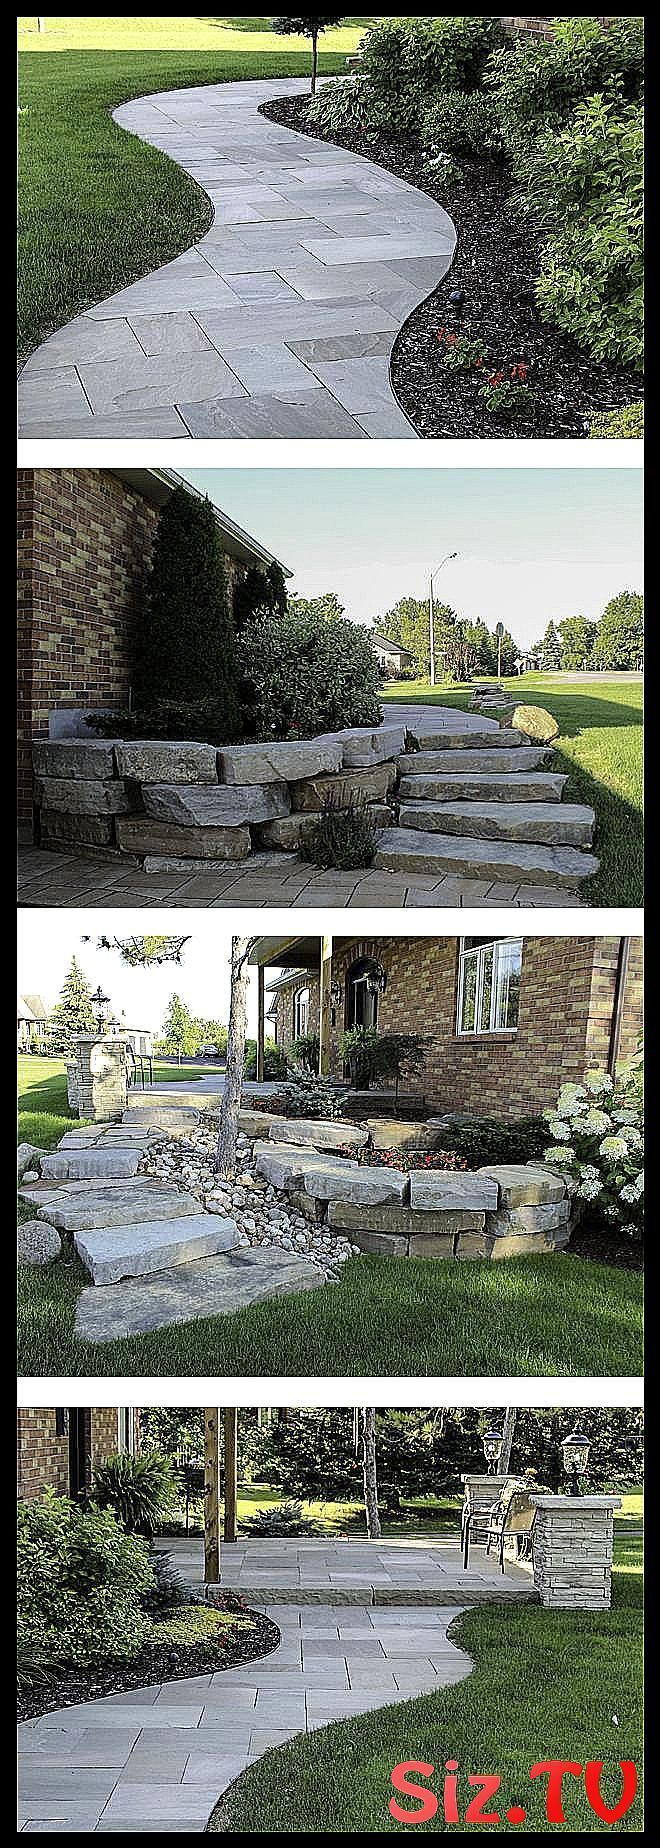 RUSTIC STYLE NATURAL STONE WALKWAY   RETAINING WALLS  ACCENTED BY GARDENS Simple yet elegant a windi #ACCENTED #area #backyard #Banas #beautiful #connecting #door #Driveway #élégant #enclose #entry #esplanade #Front #Gardens #immediately #leading #leads #moving #natural #path #pillars #Raised #retaining #rustic #set #short #side #simple #sitting #Steps #Stone #stone_Garden_paths_front_doors #style #Walkway #wall #walls #welcomed #winding #you39re #walkwaystofrontdoor RUSTIC STYLE NATURAL STONE #walkwaystofrontdoor